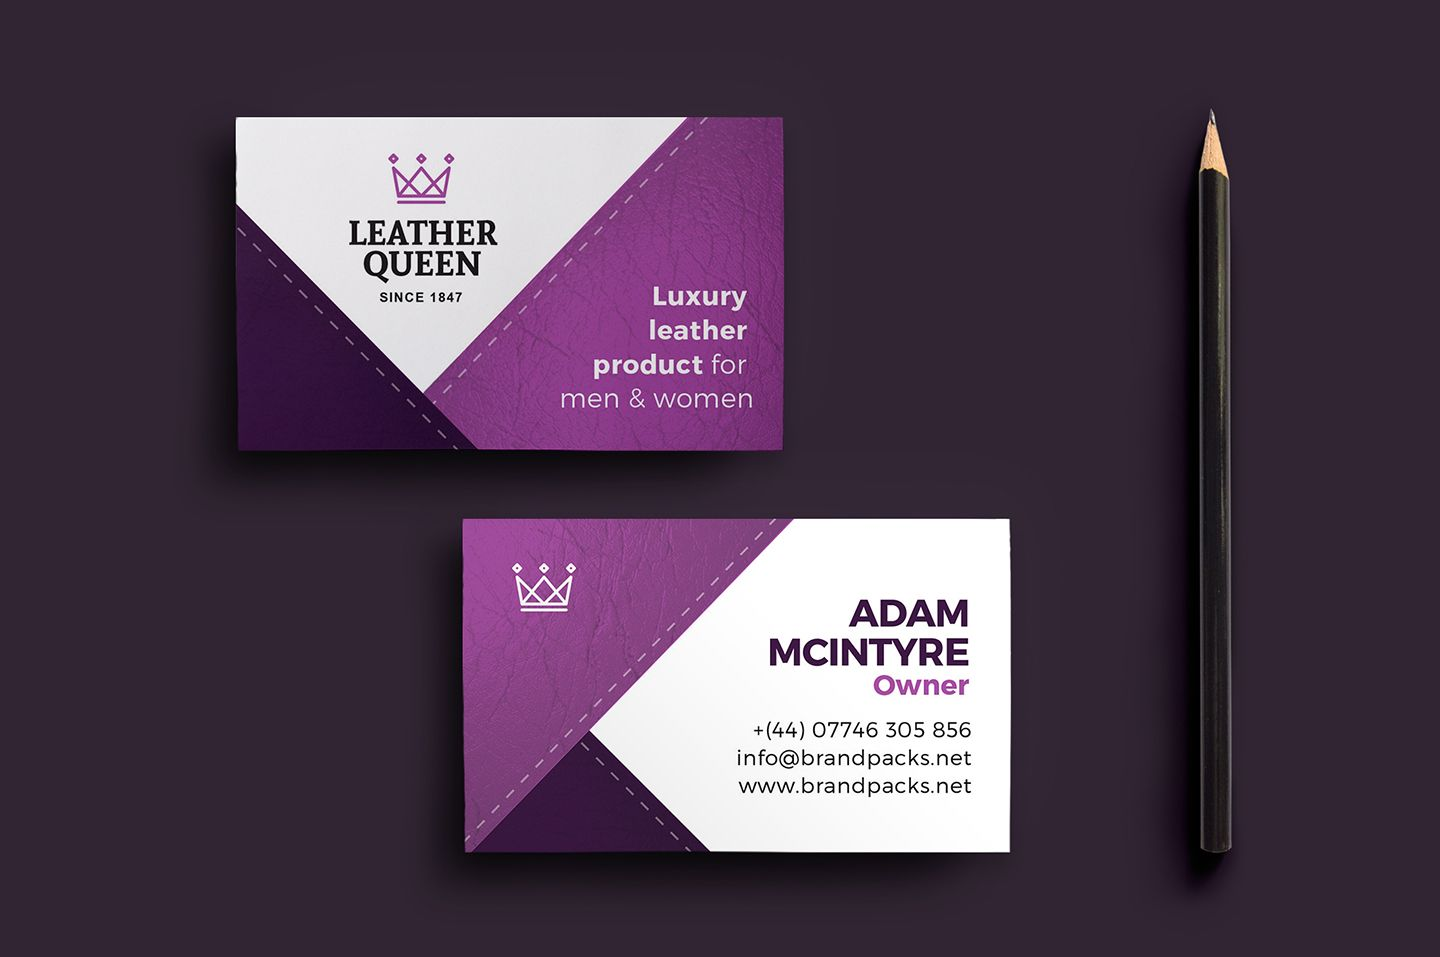 Free Business Card Template For Local Shop Owners Works With - Adobe illustrator business card template